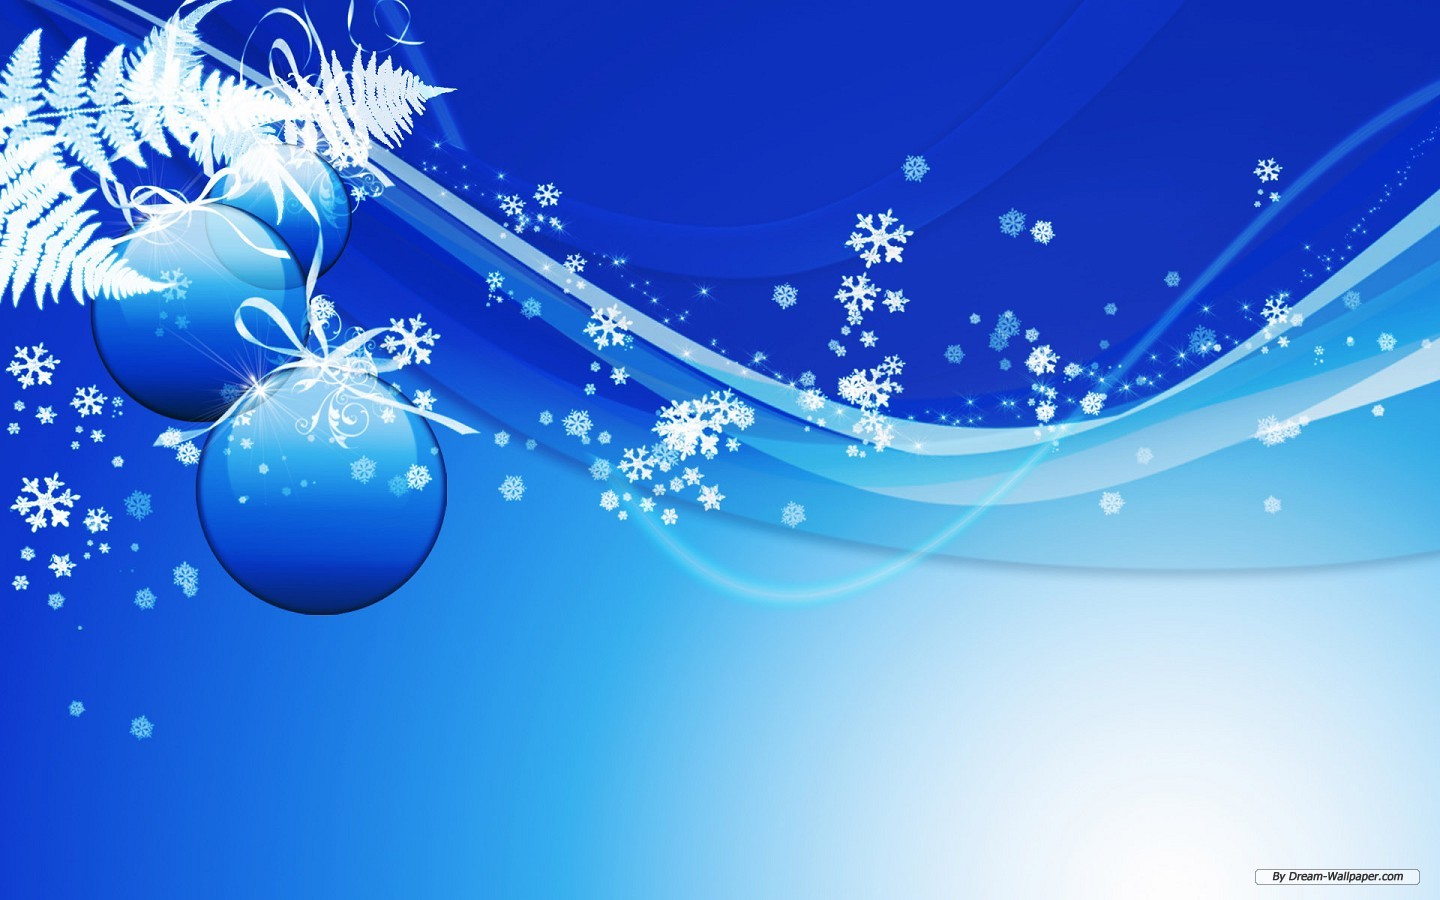 Free Wallpaper - Free Holiday wallpaper - Christmas theme 8